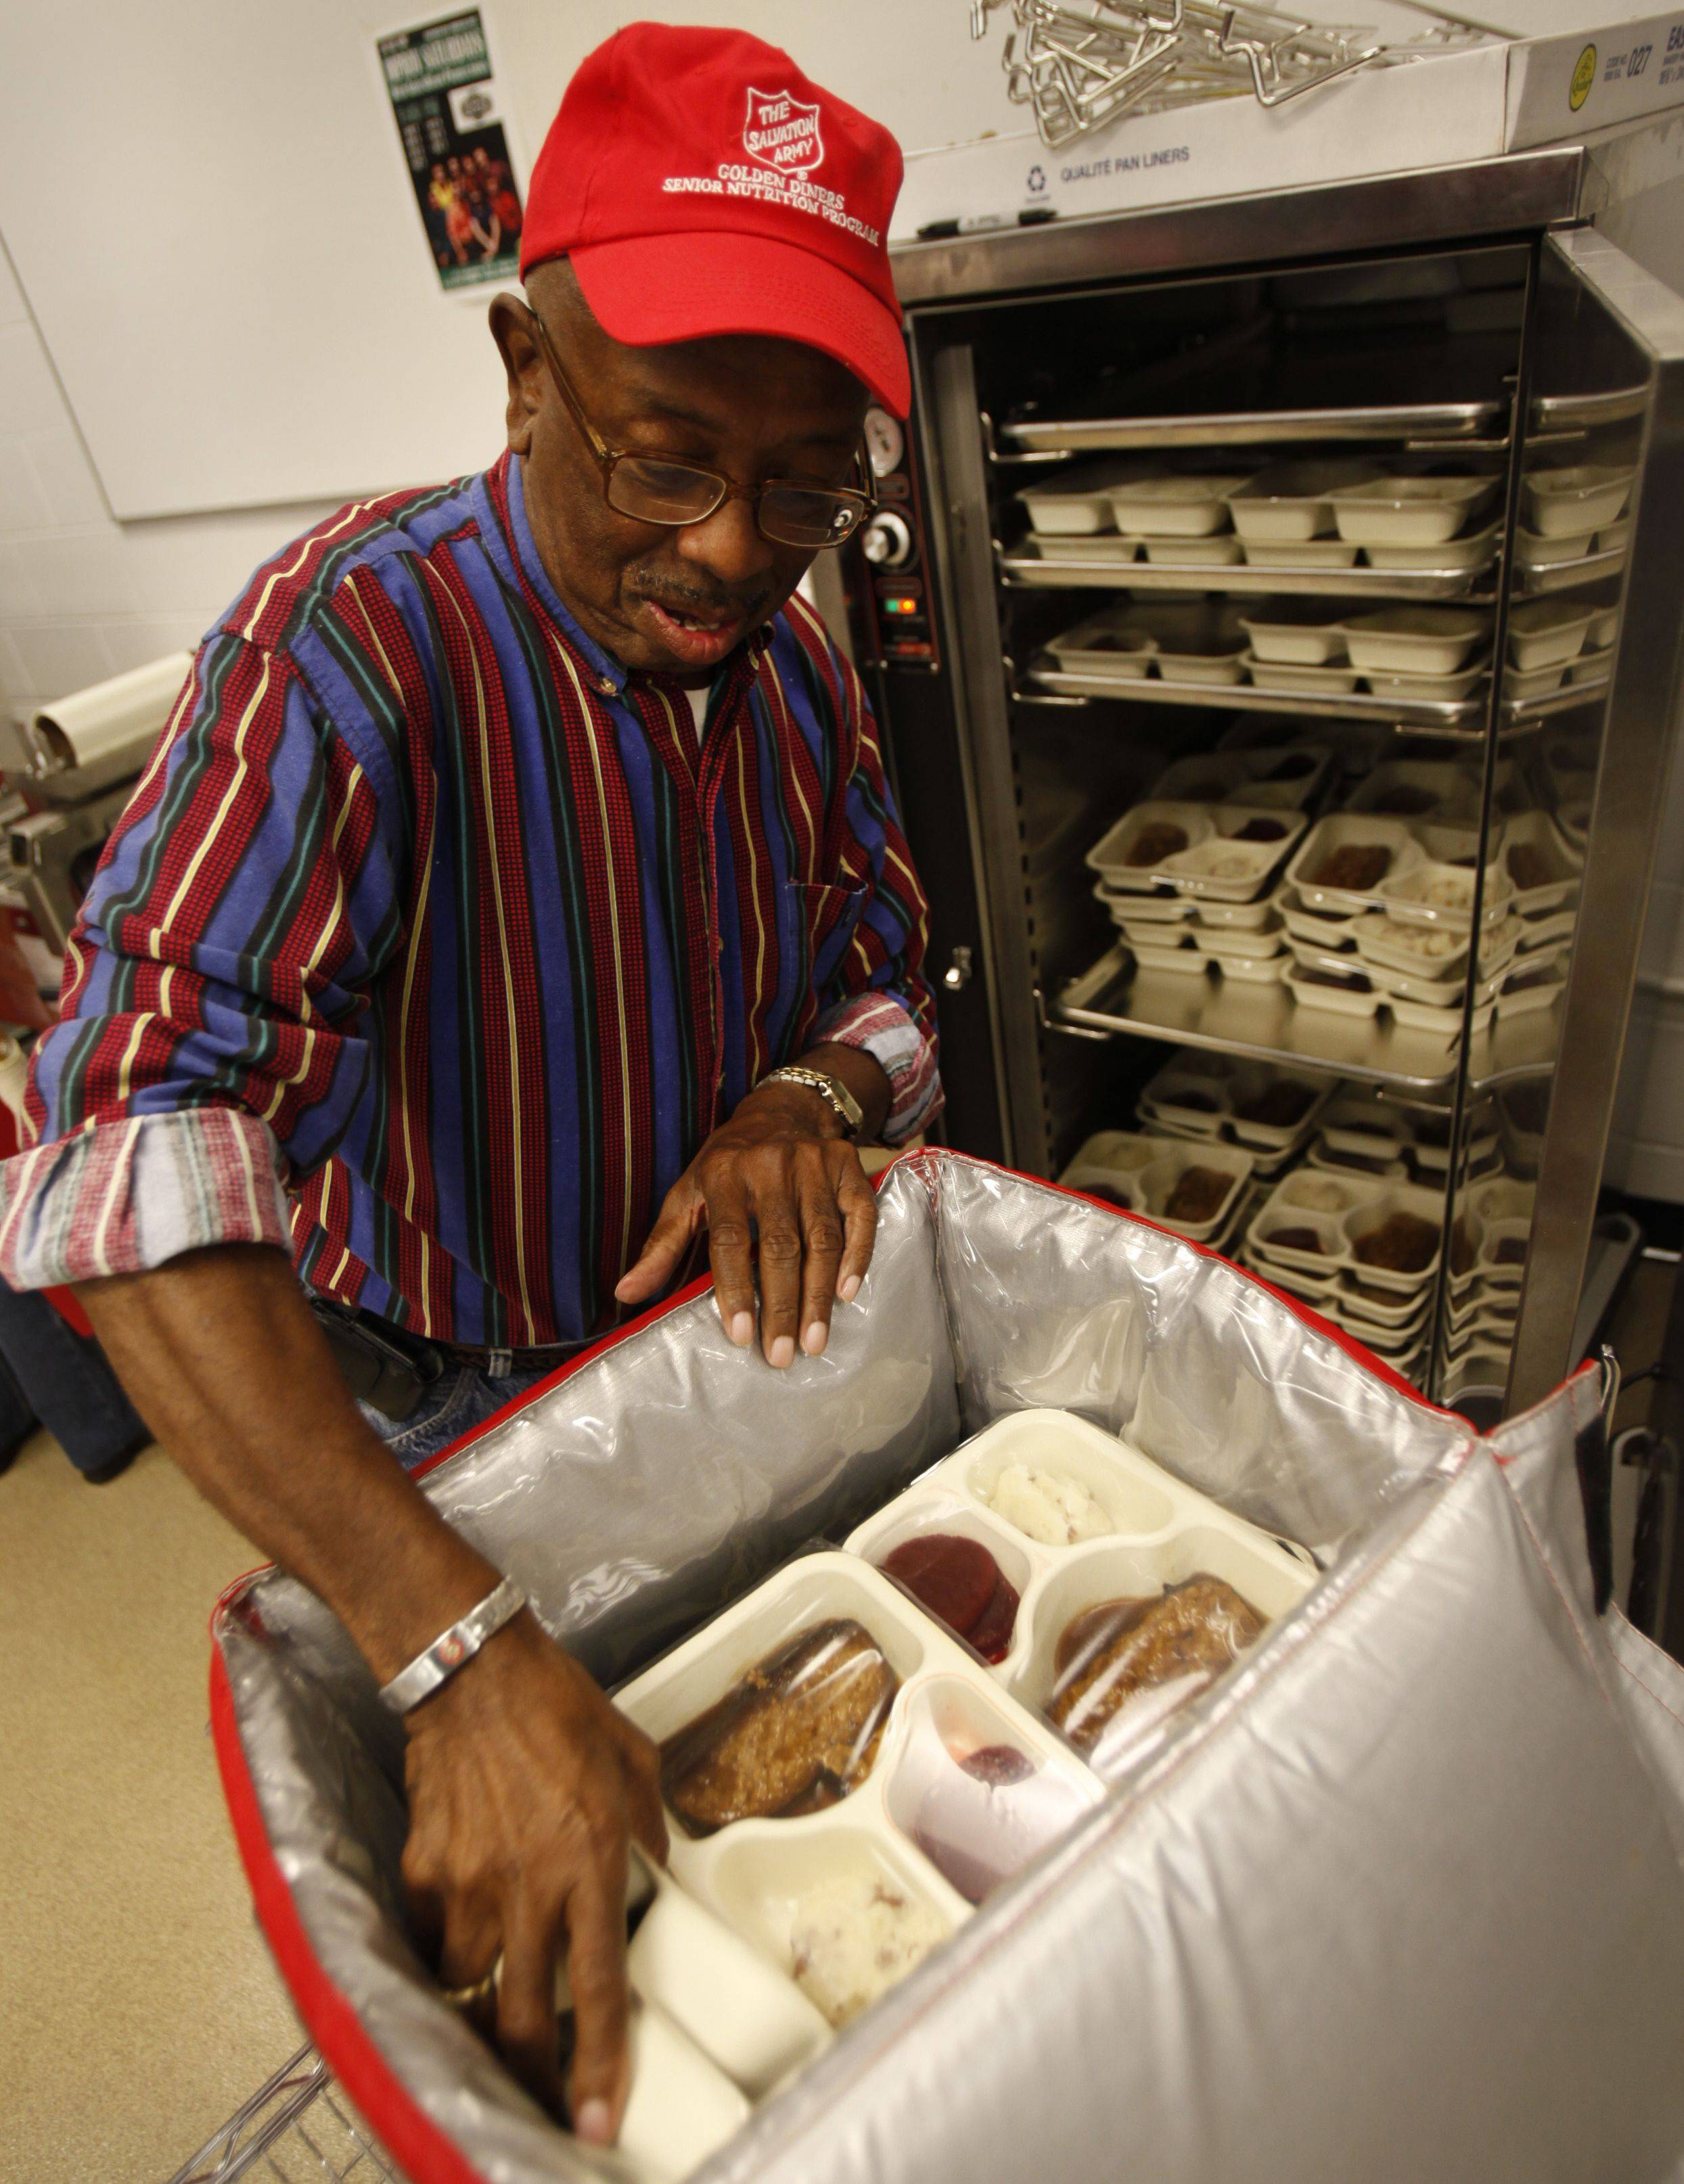 Employee Leslie Thomas of Elgin says his work with the program has opened his eyes to how many seniors live, and he gets satisfaction from the connections he makes.